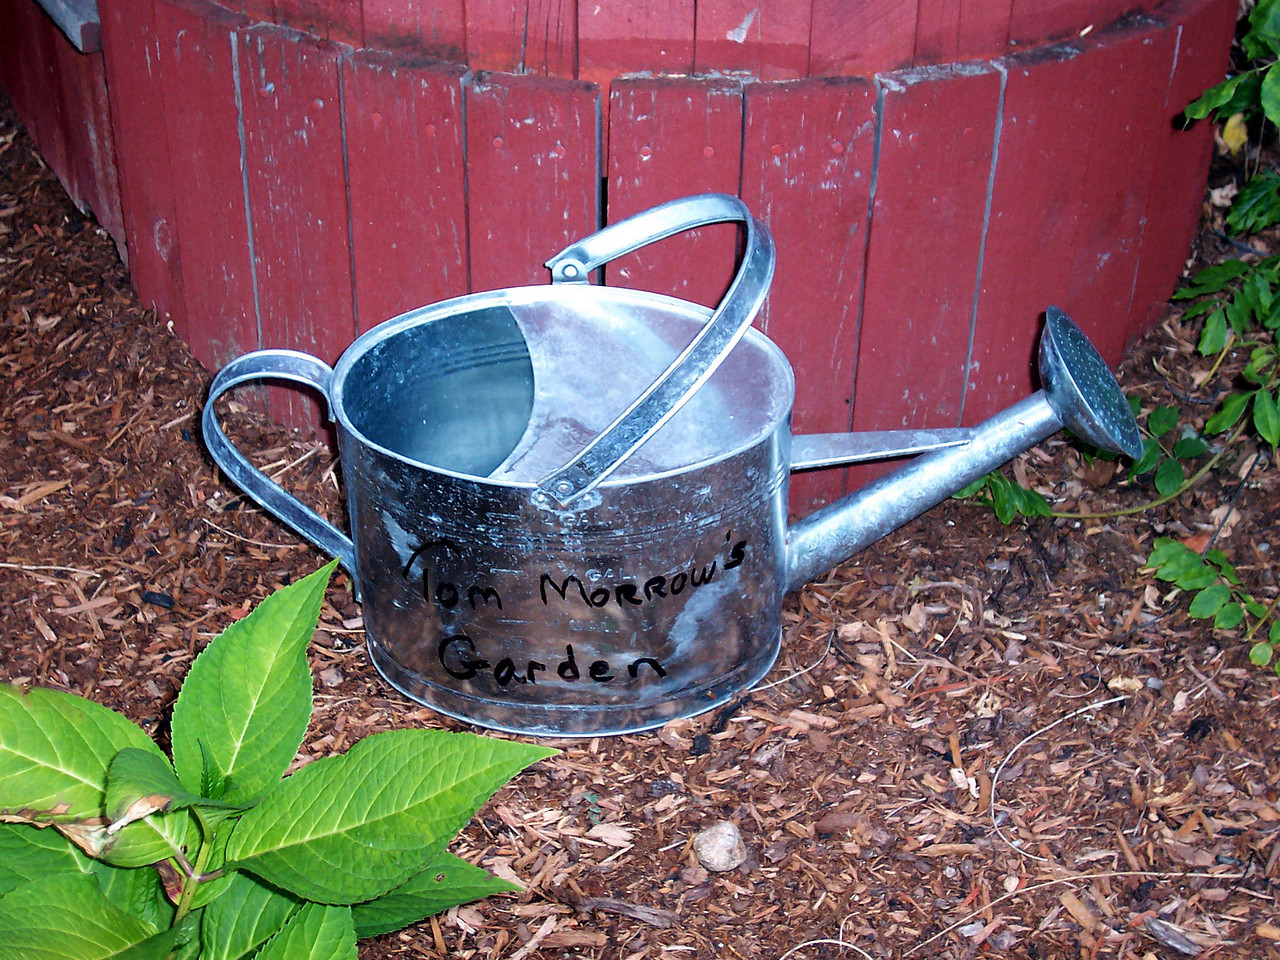 Watering can in Tom Morrow's memorial hydrangea garden.